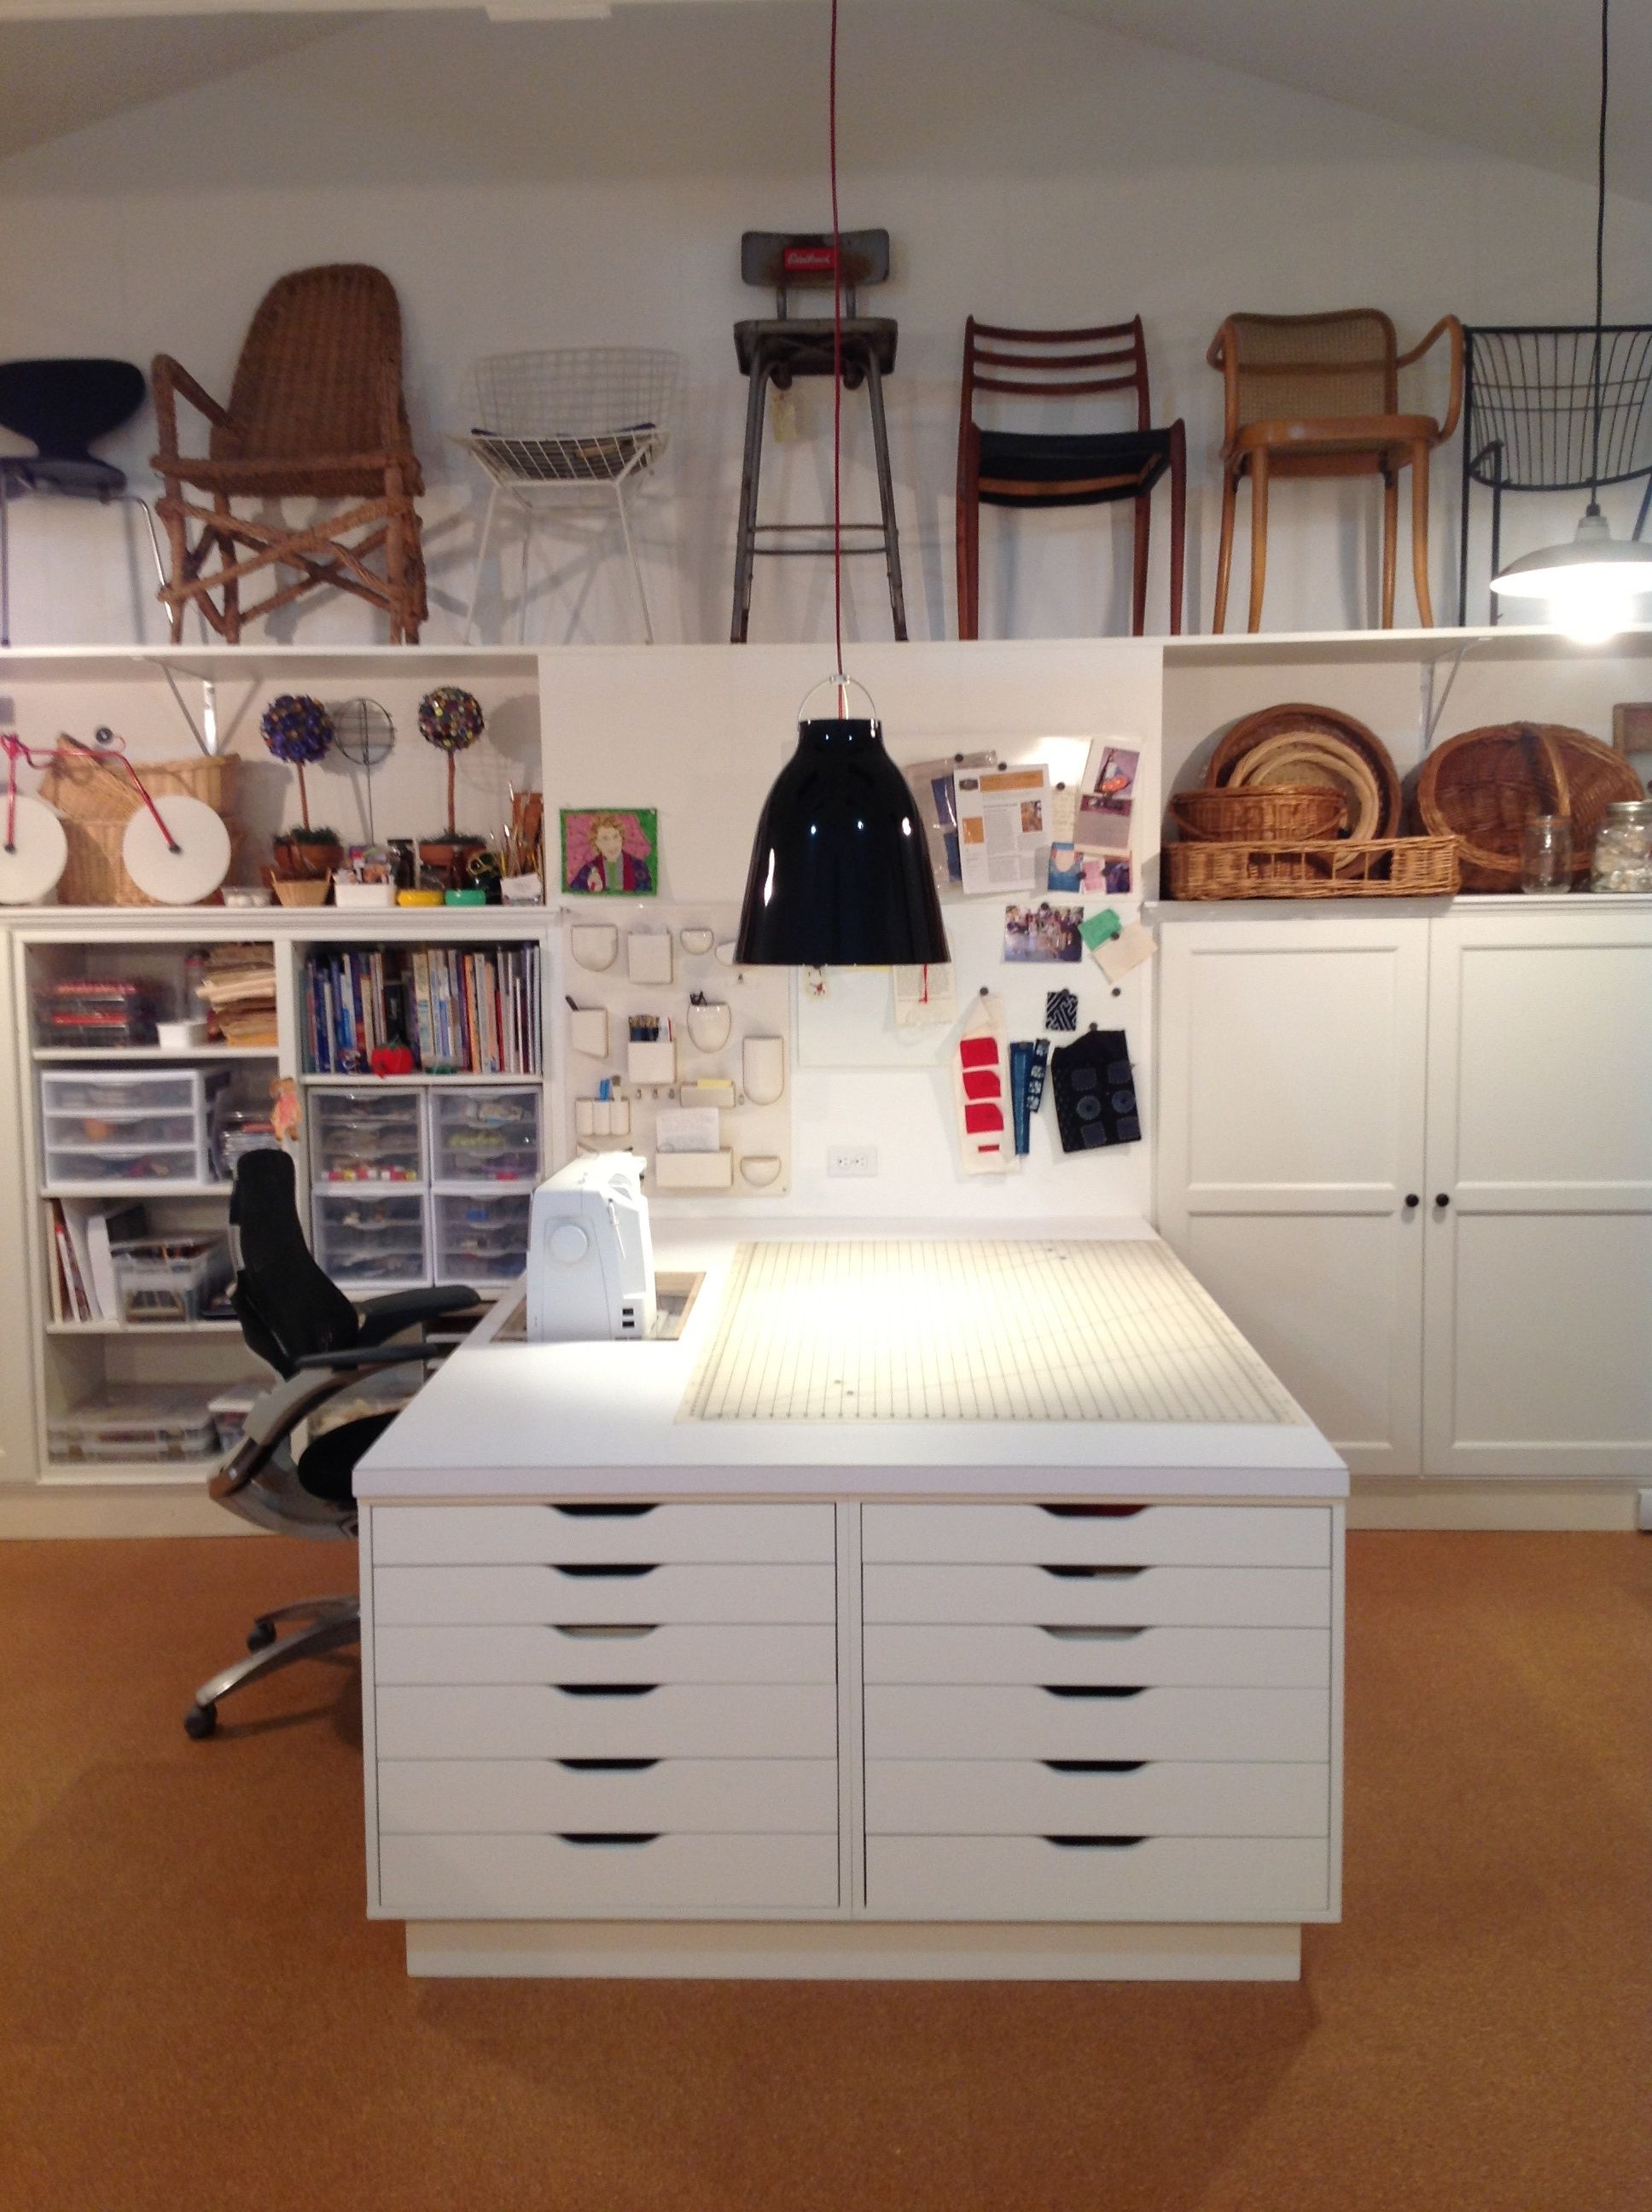 FiberArts Studio Using Ikea Besta Cabinets Using A U0027built Inu0027 Application  In Background, And Ikea Alex Cabinets Supporting Sewing Table.